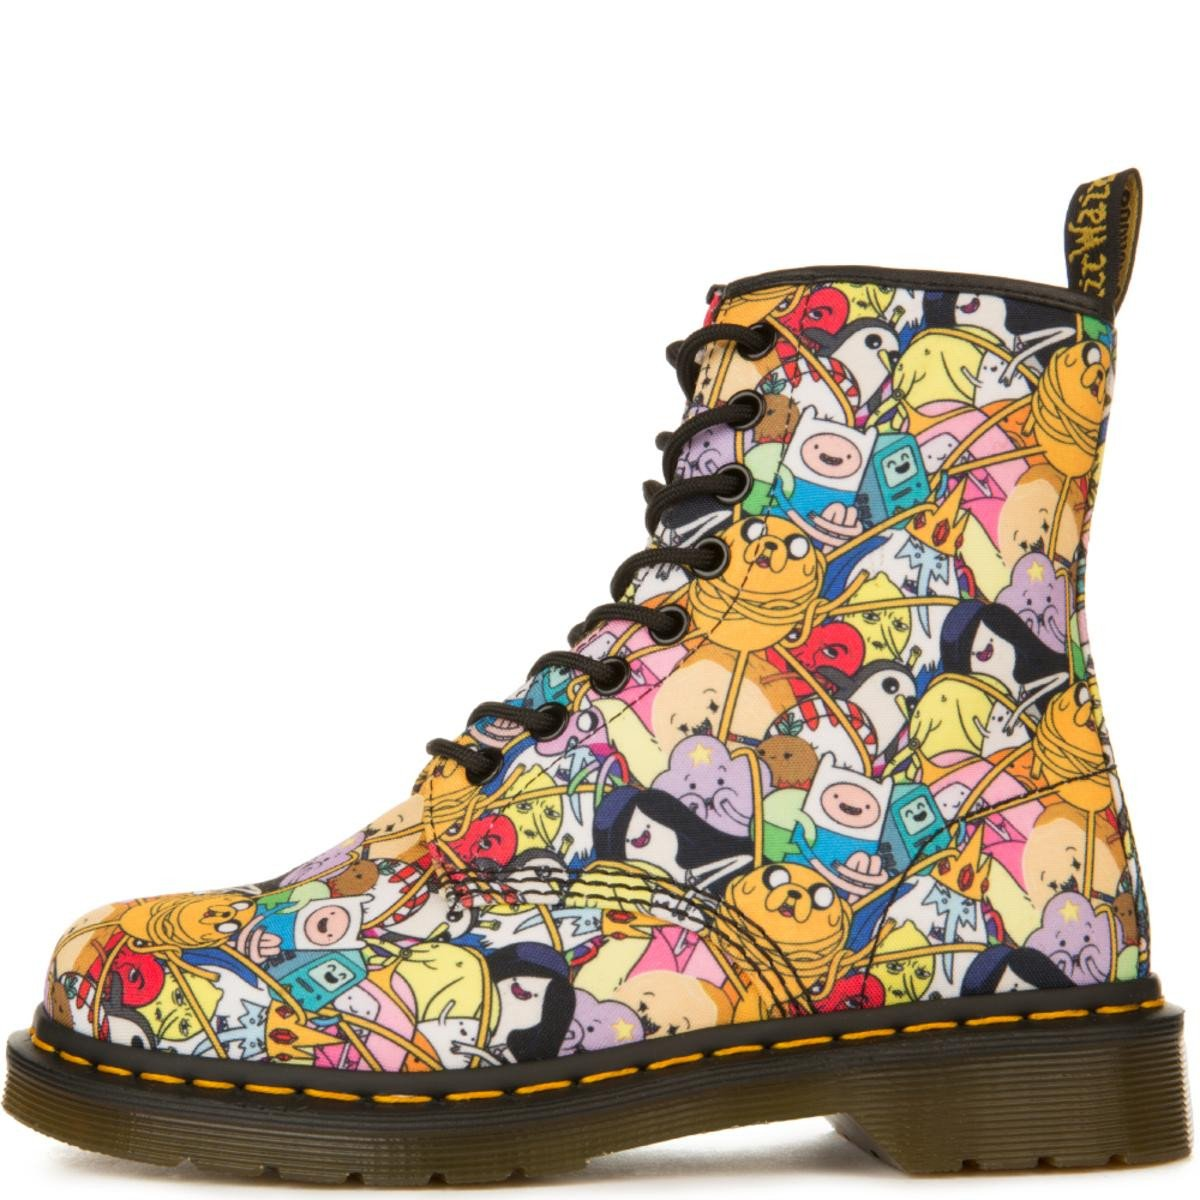 Dr. Martens Unisex: Adventure Time Characters Castel Boots